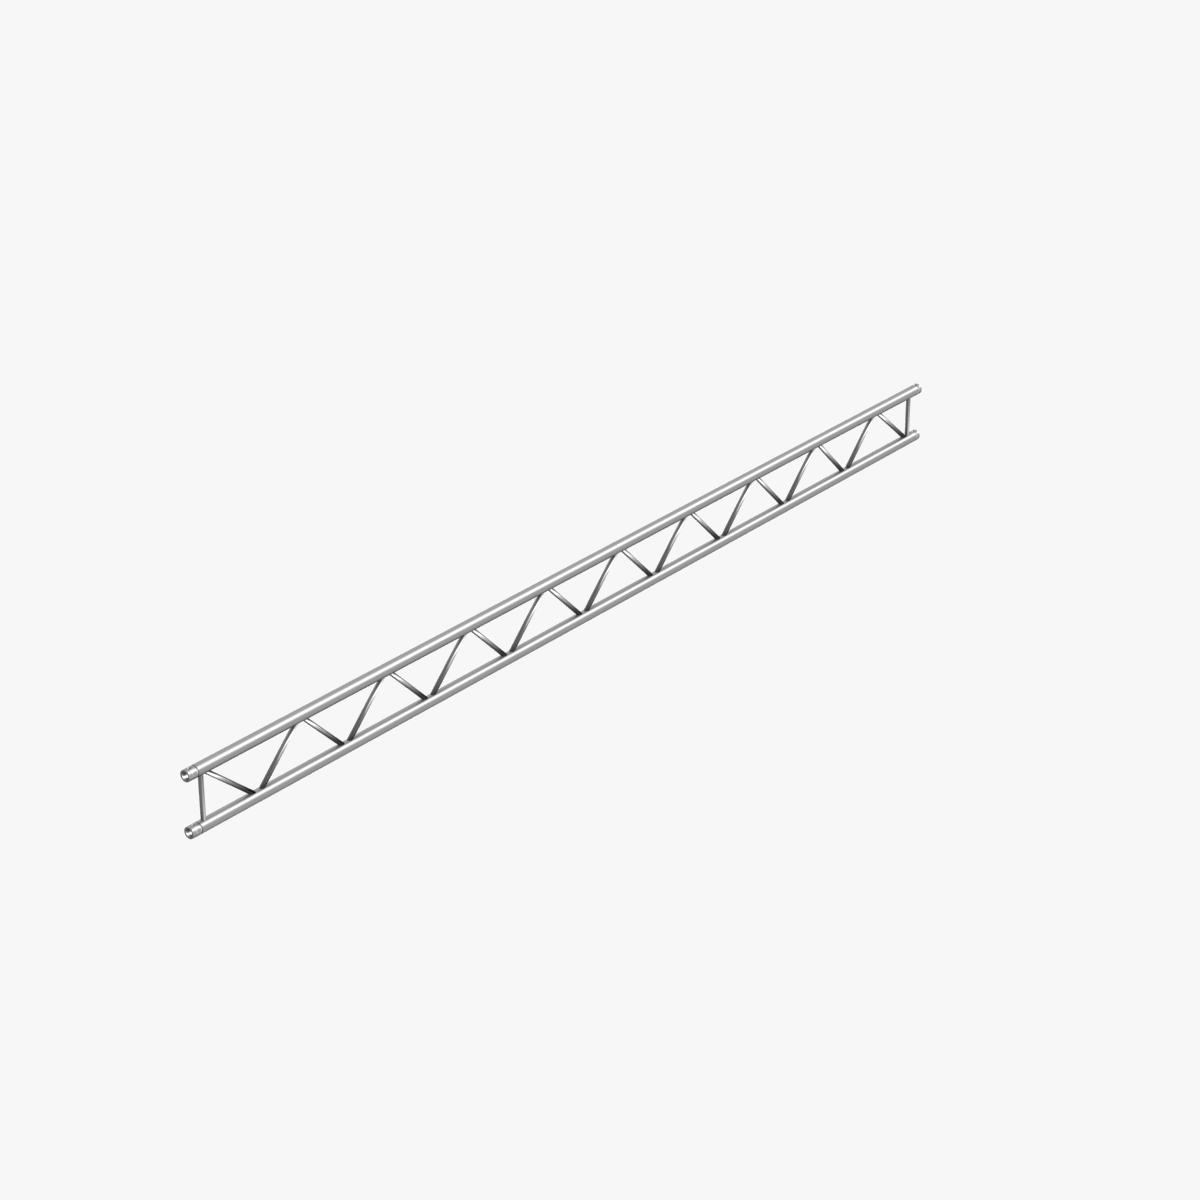 beam trusses (collection 24 modular pieces) 3d model 3ds max dxf fbx bmp blend c4d dae other obj 268737